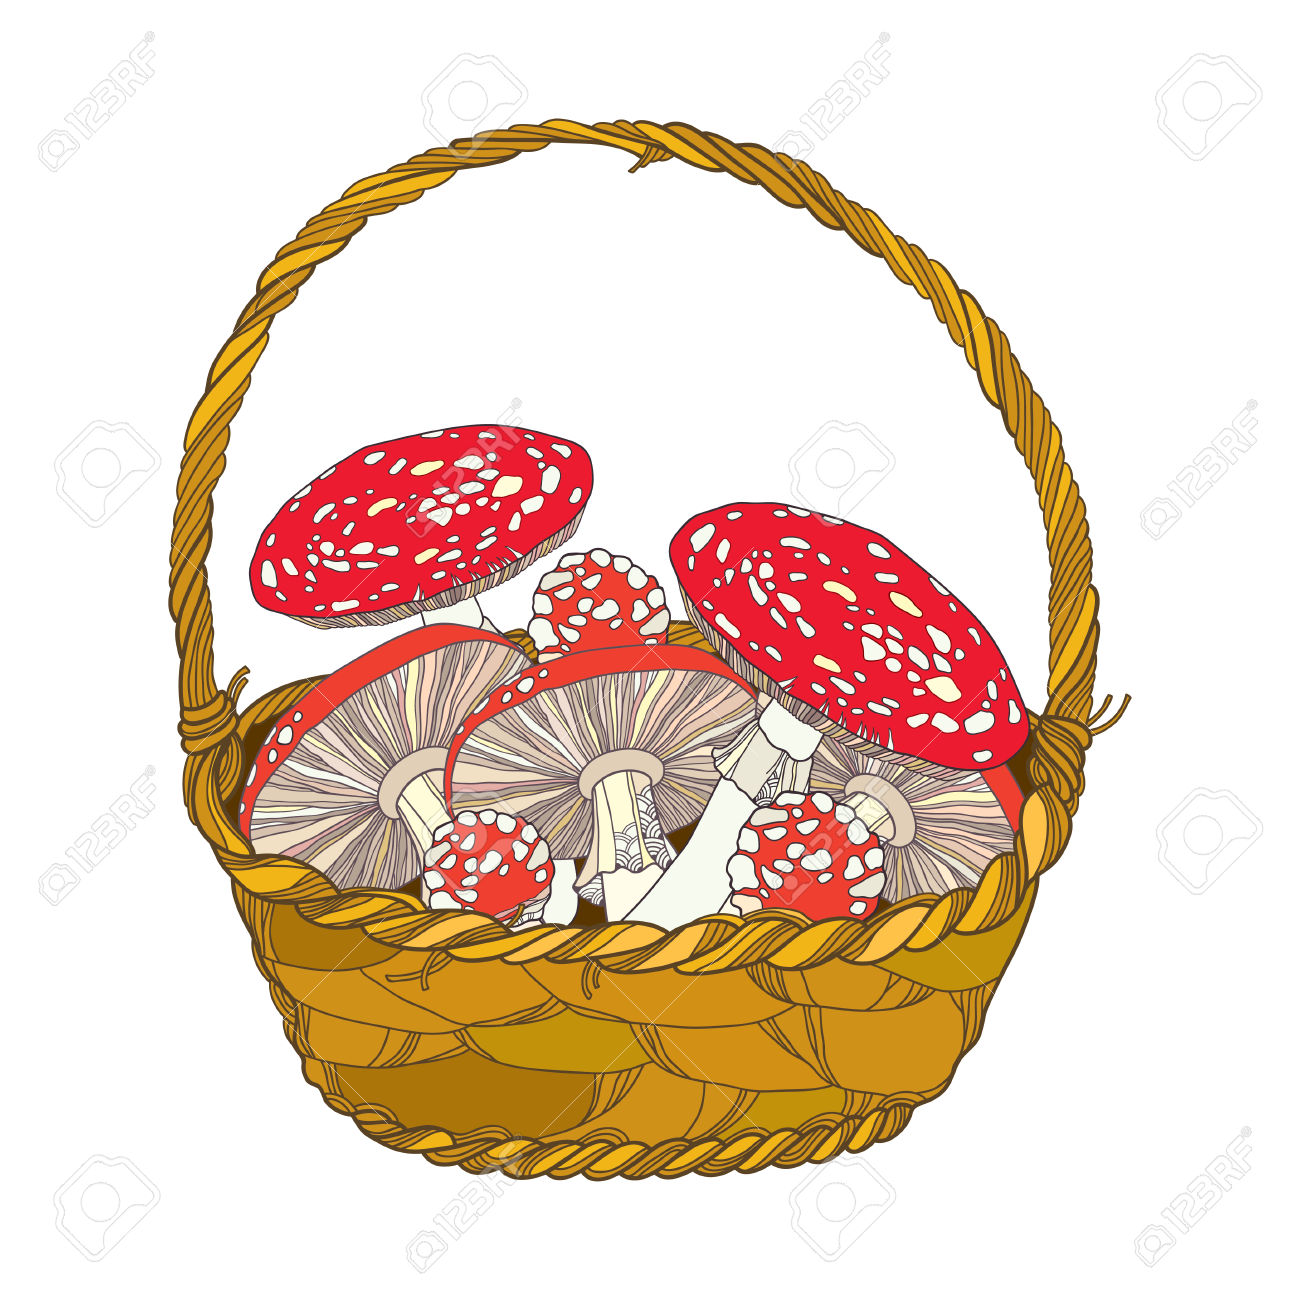 Wicker Basket With Amanita Or Fly Agaric Mushroom Isolated On.